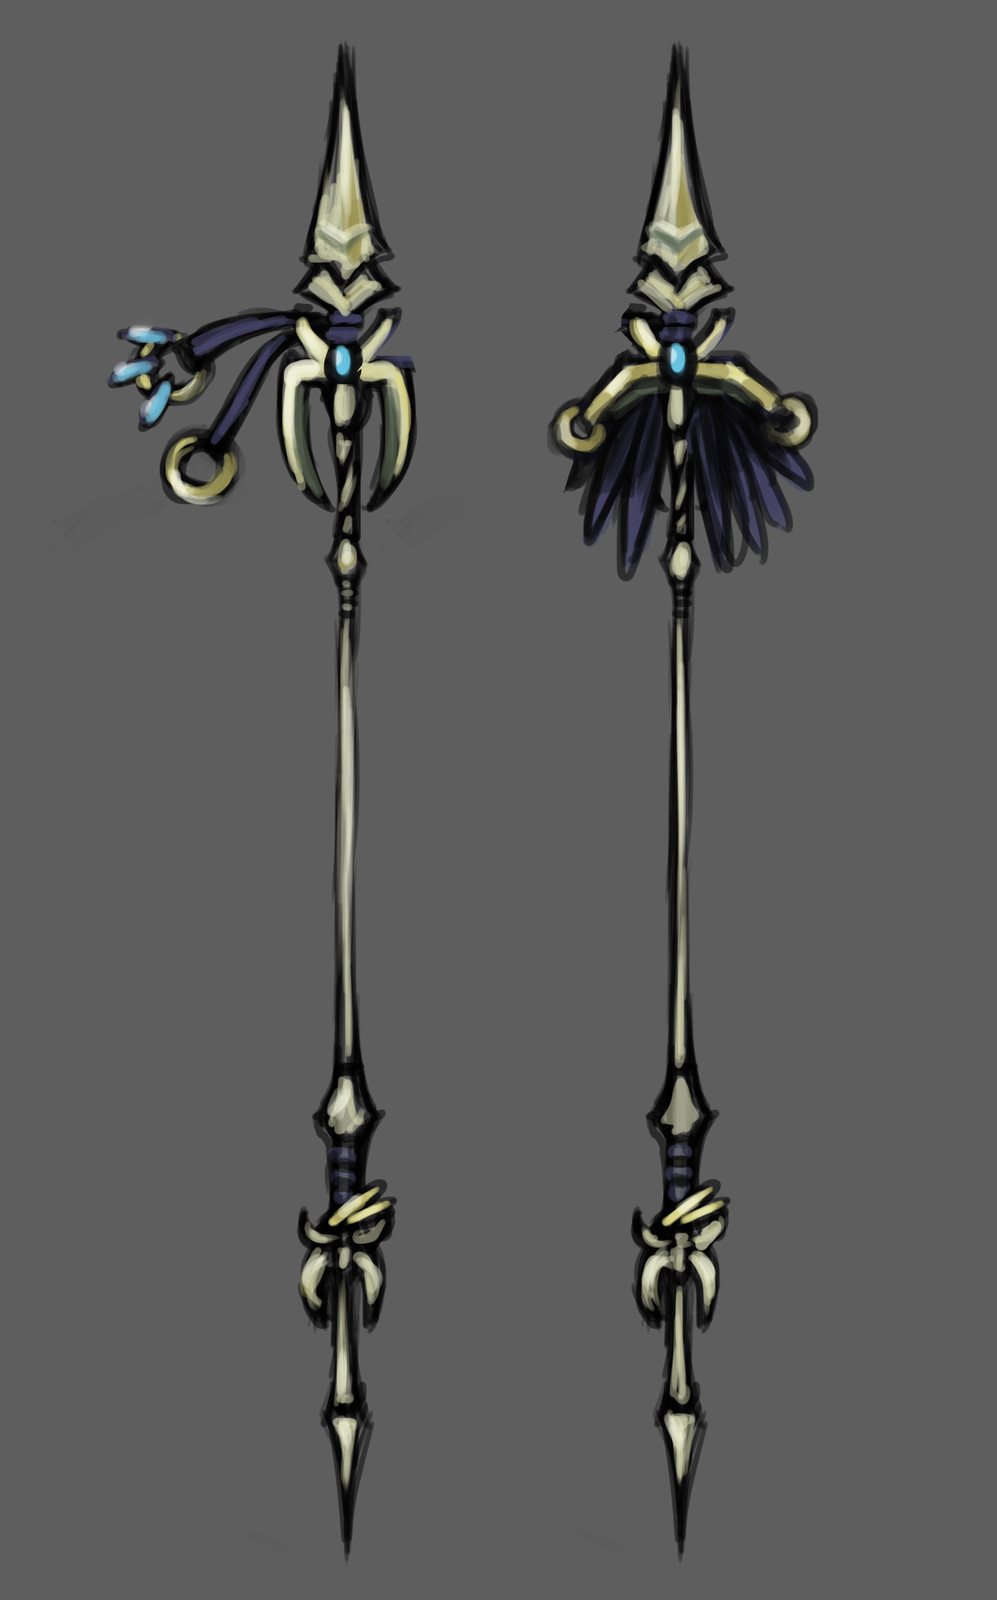 Spear Concept